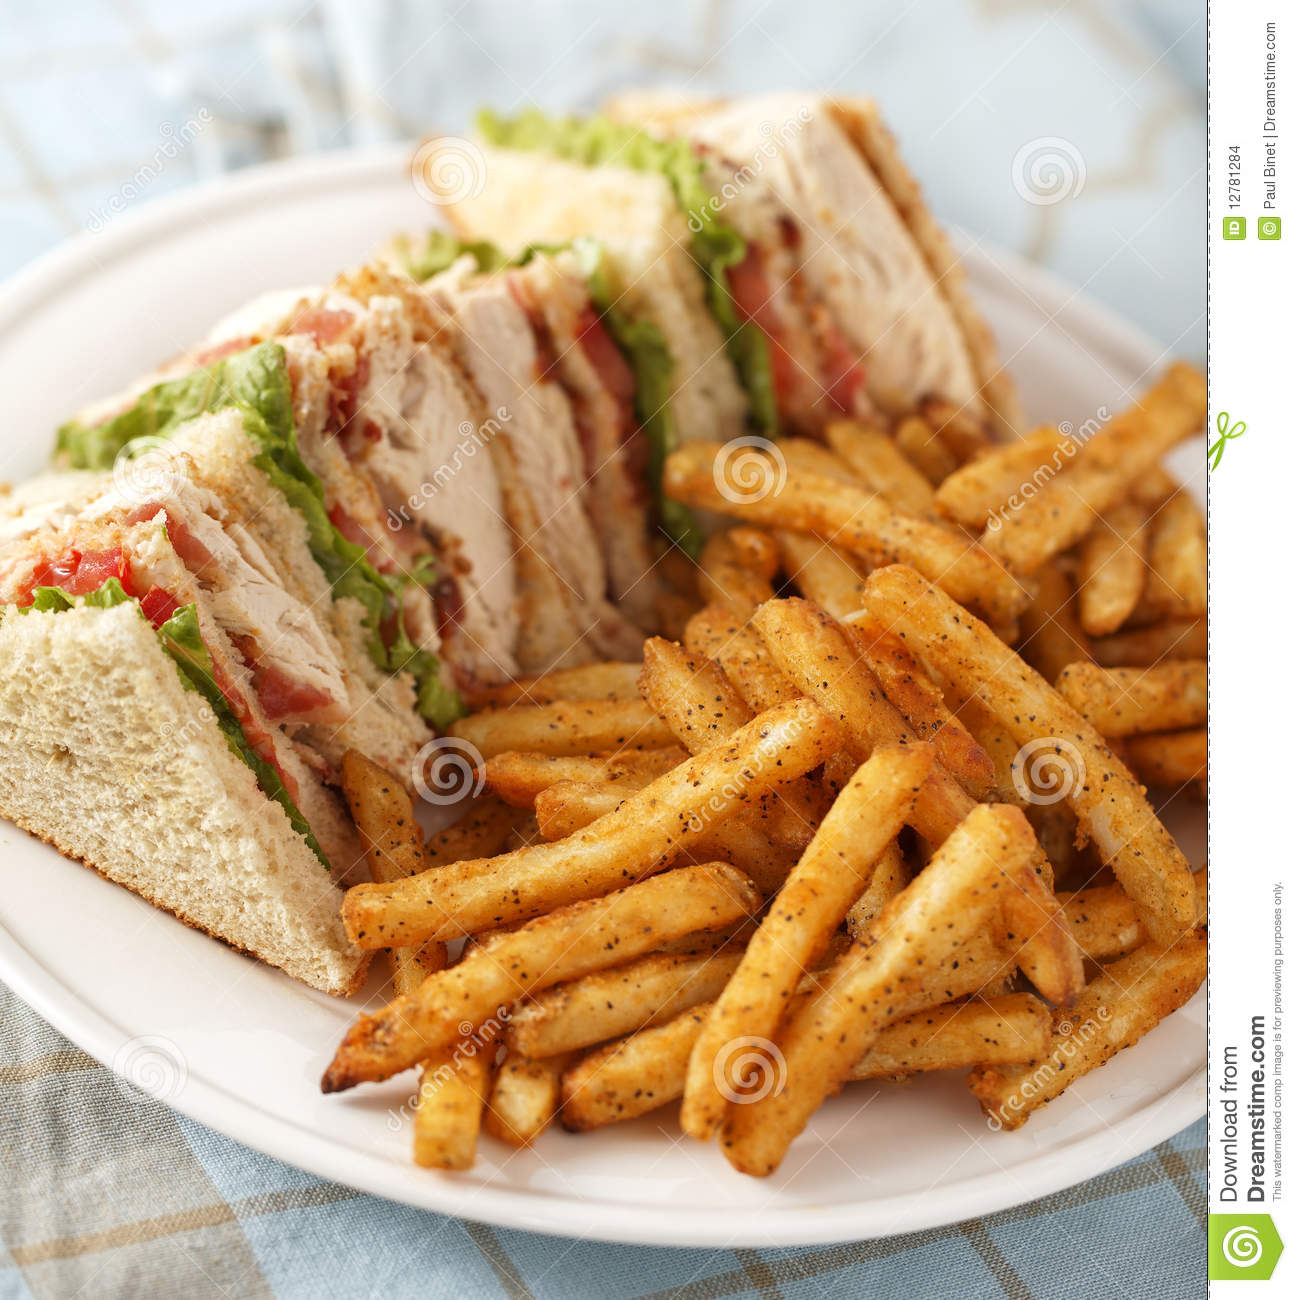 Classic Club Sandwich Stock Images - Image: 12781284